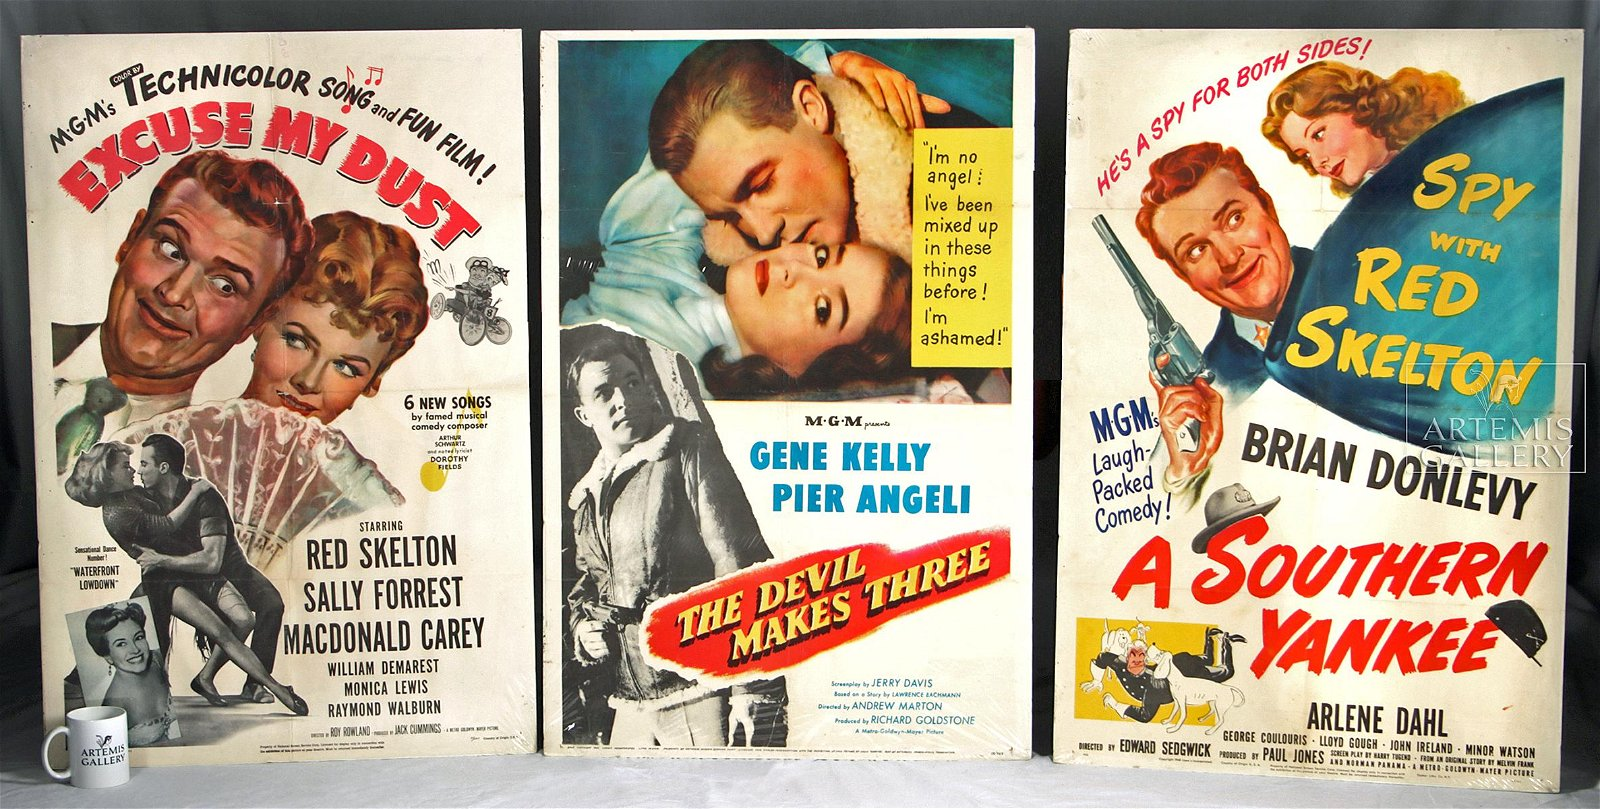 Lot of 3 Mid-20th Century Vintage Movie Posters